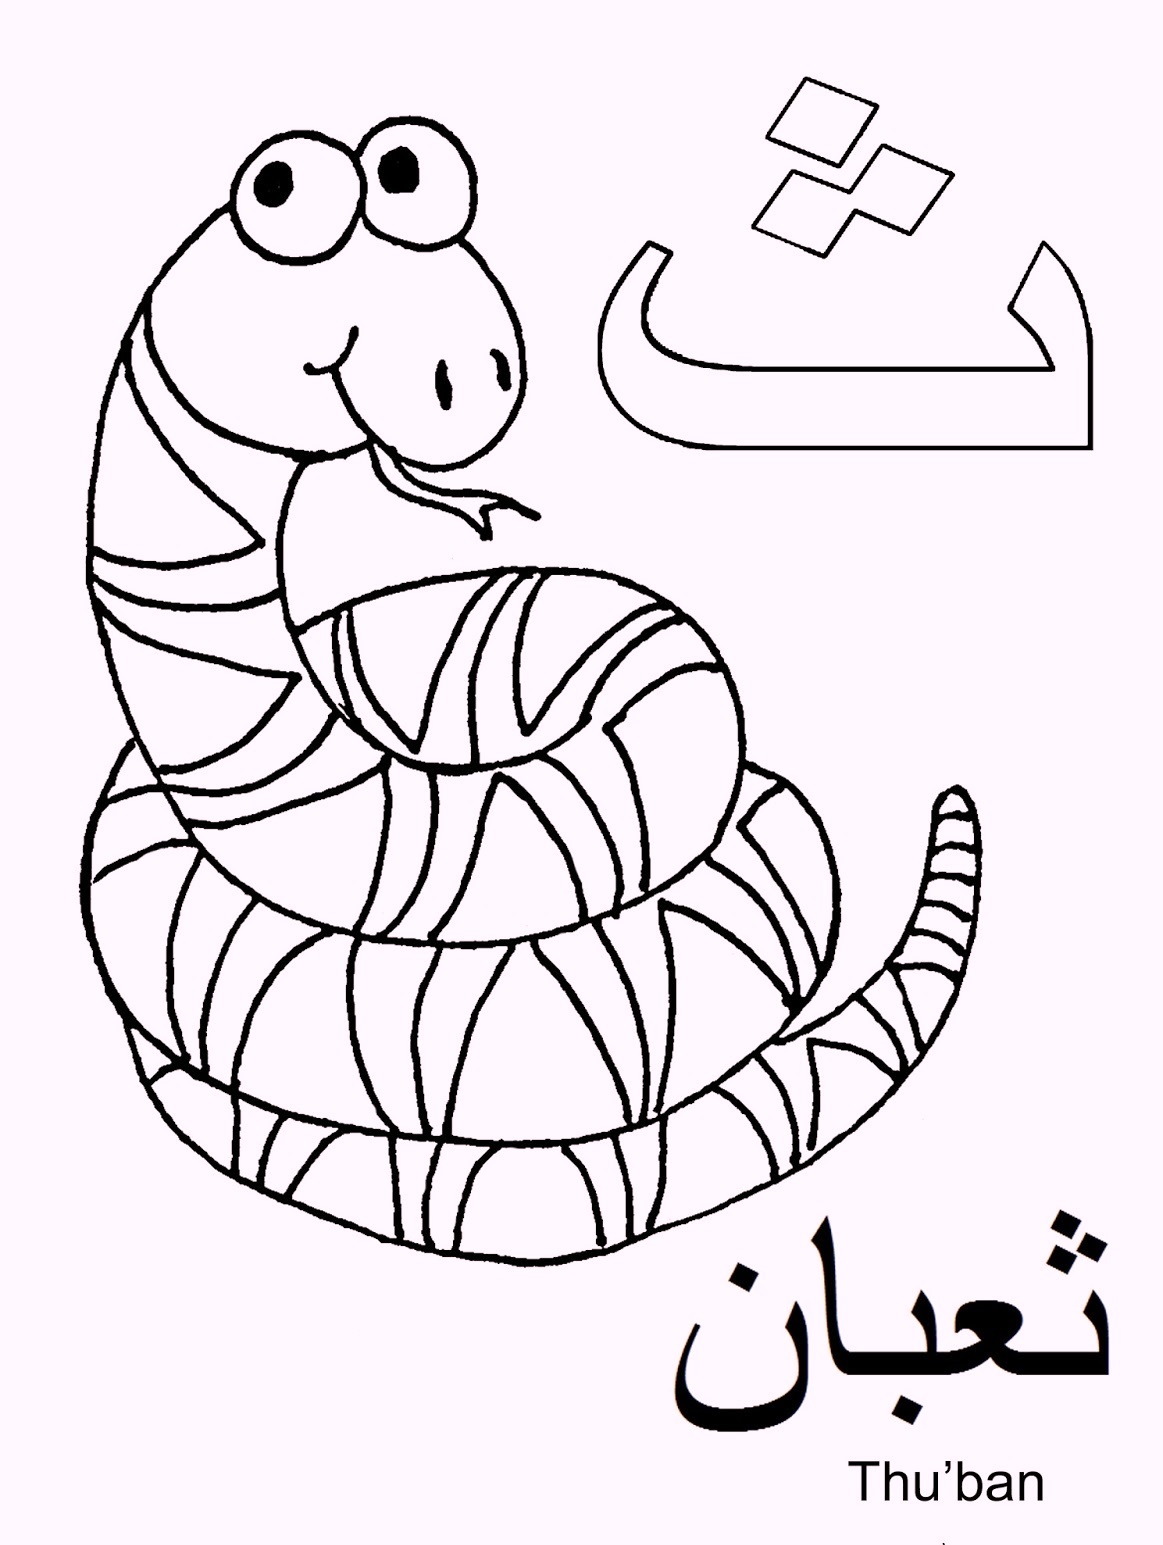 tsa-arabic-hijaiyah-alphabet-coloring-pages